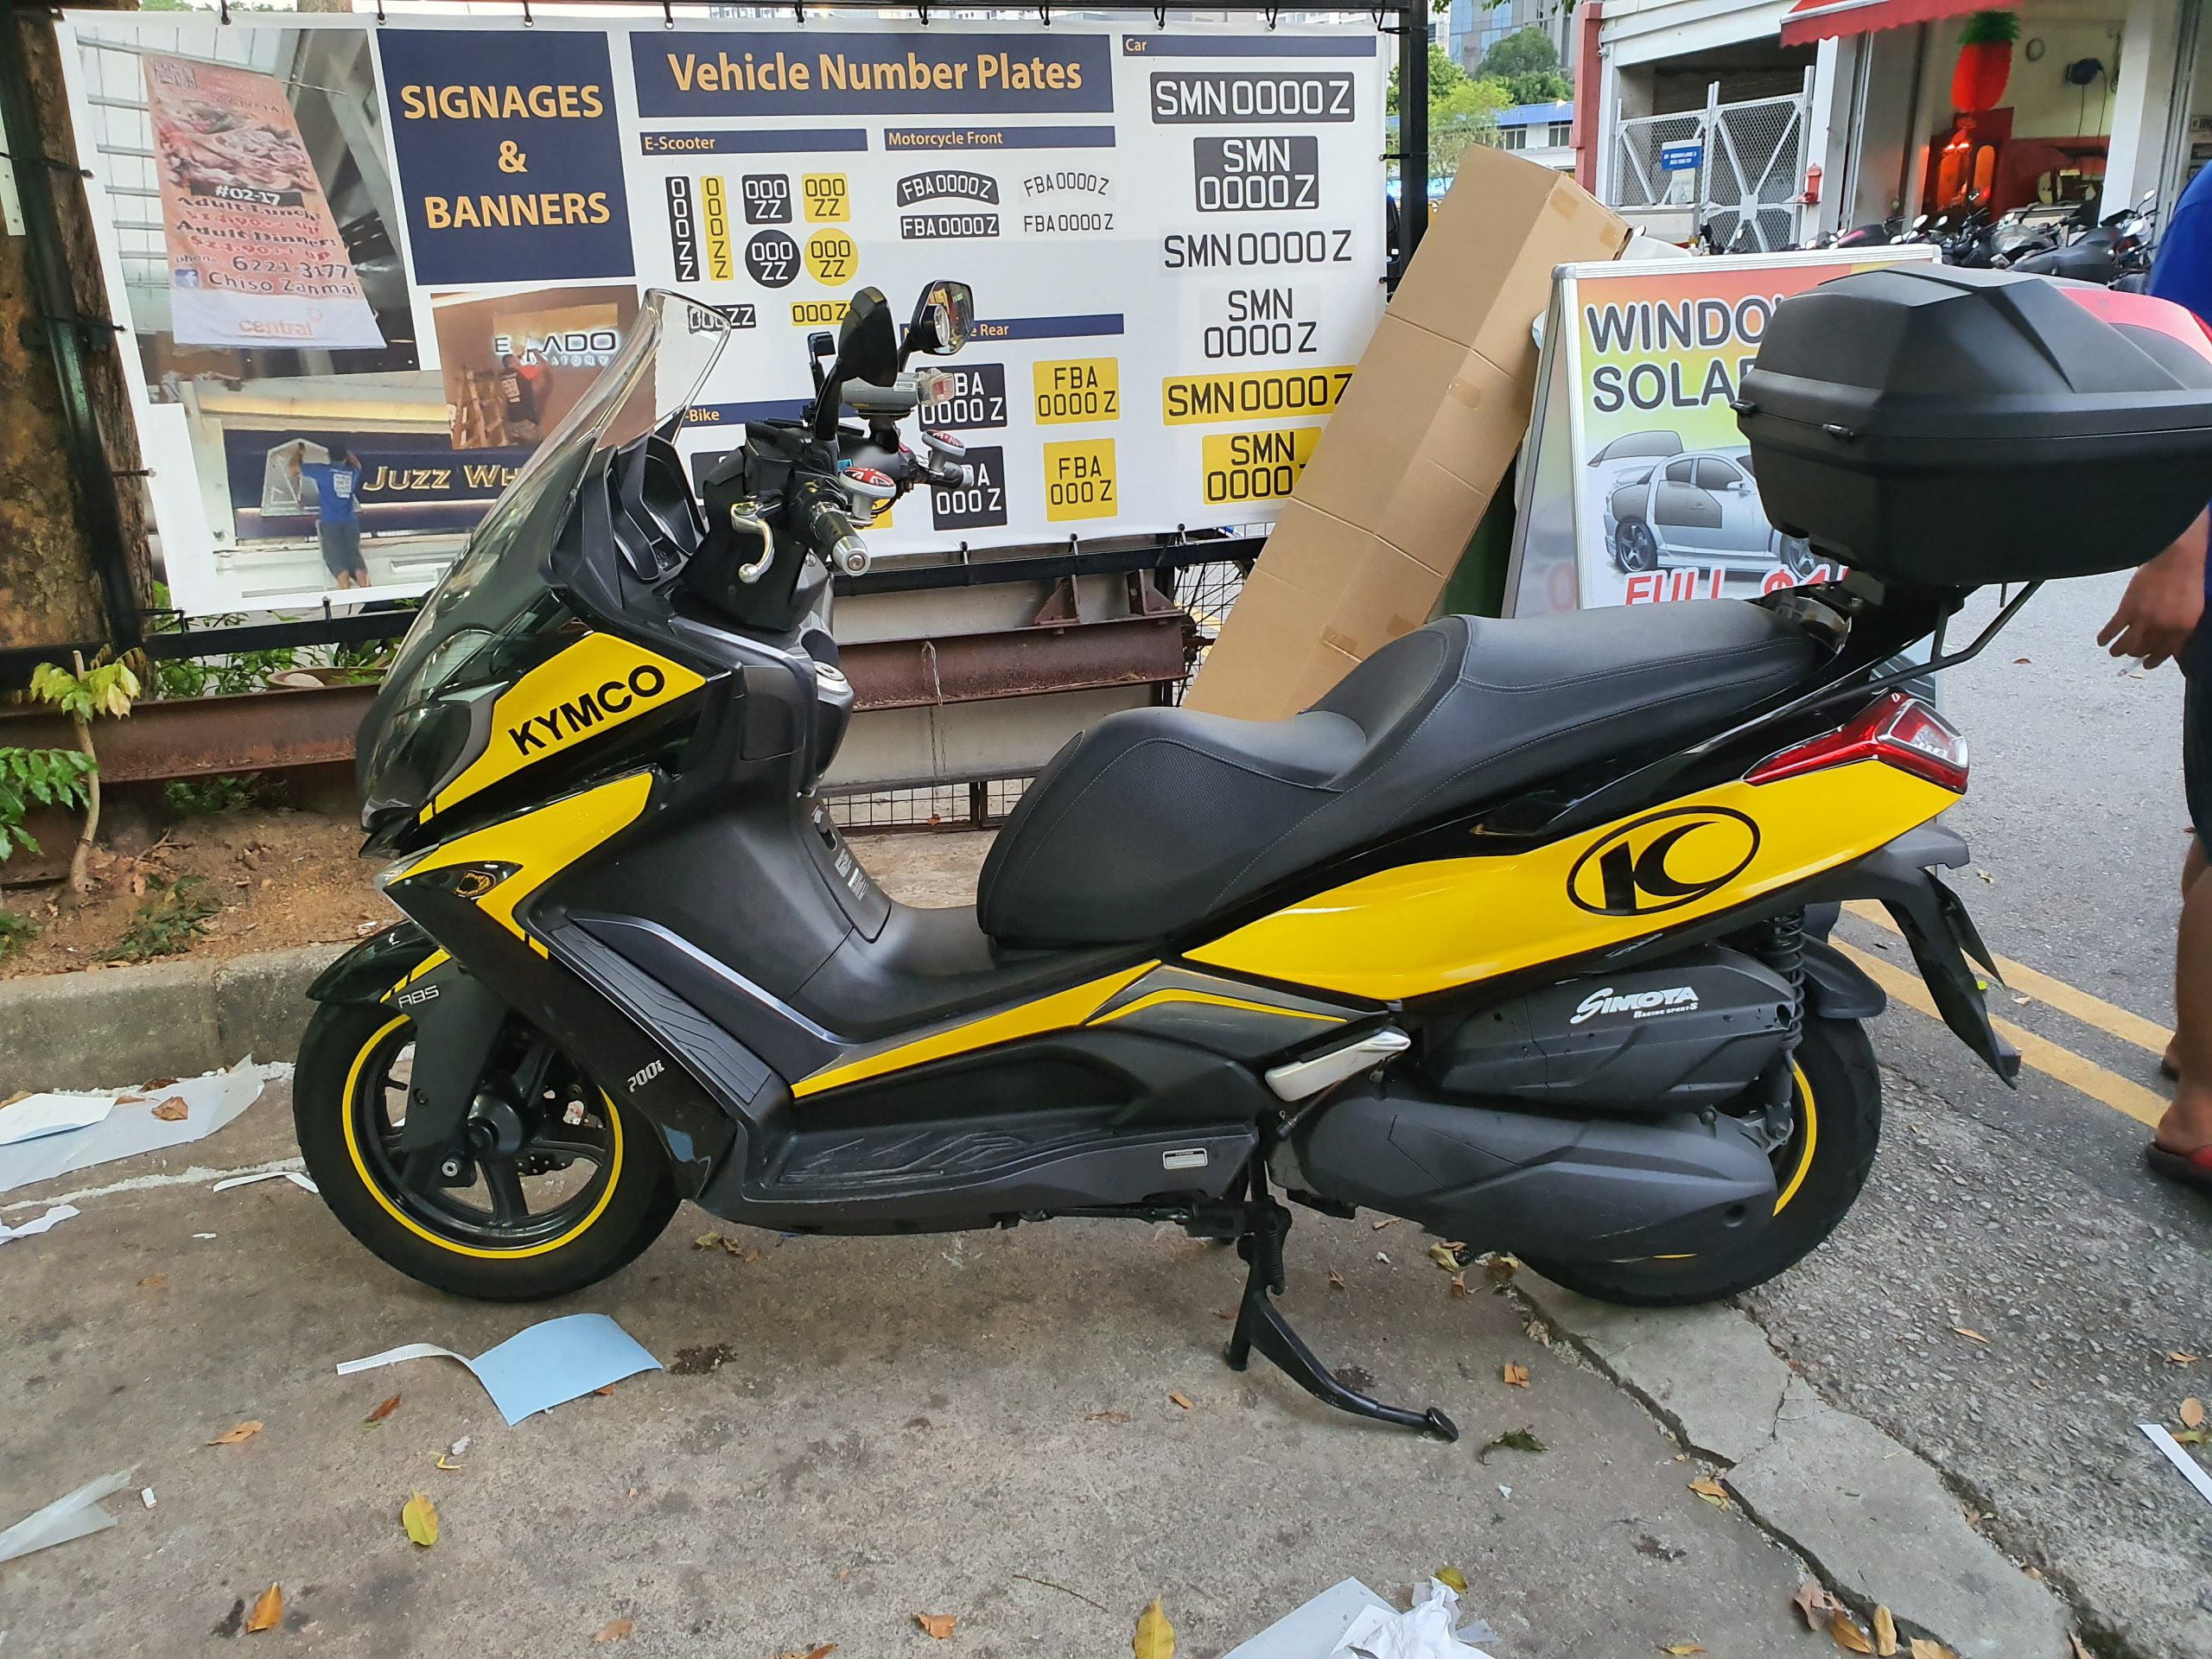 Kymco Decal Vinyl Wrap for Motorbike in yellow